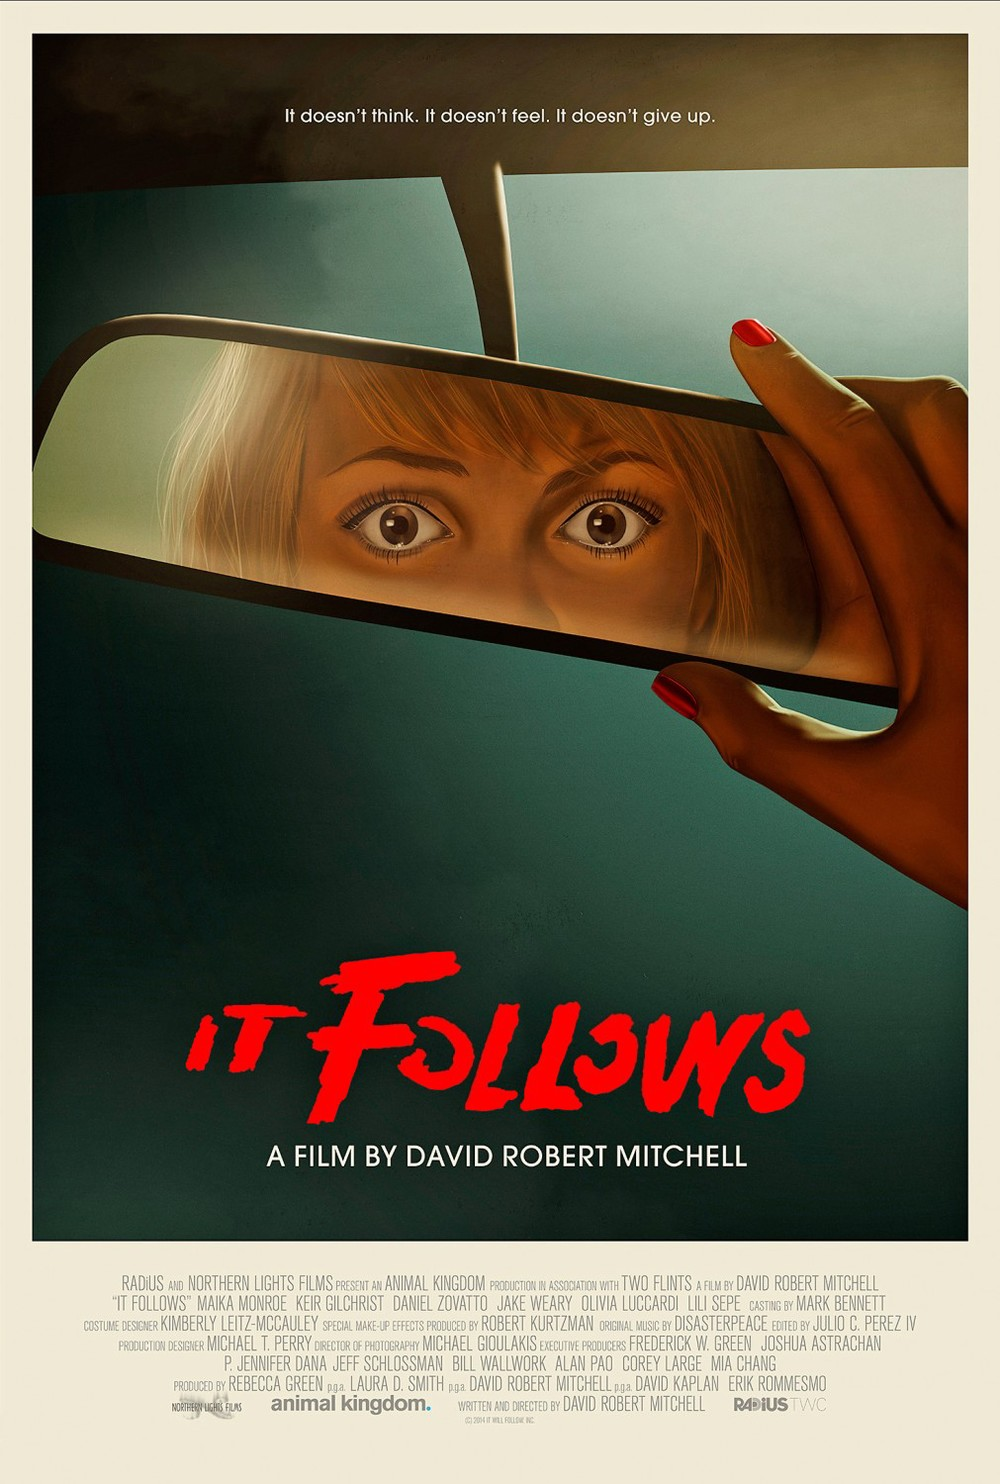 'It Follows' Retro Movie Poster